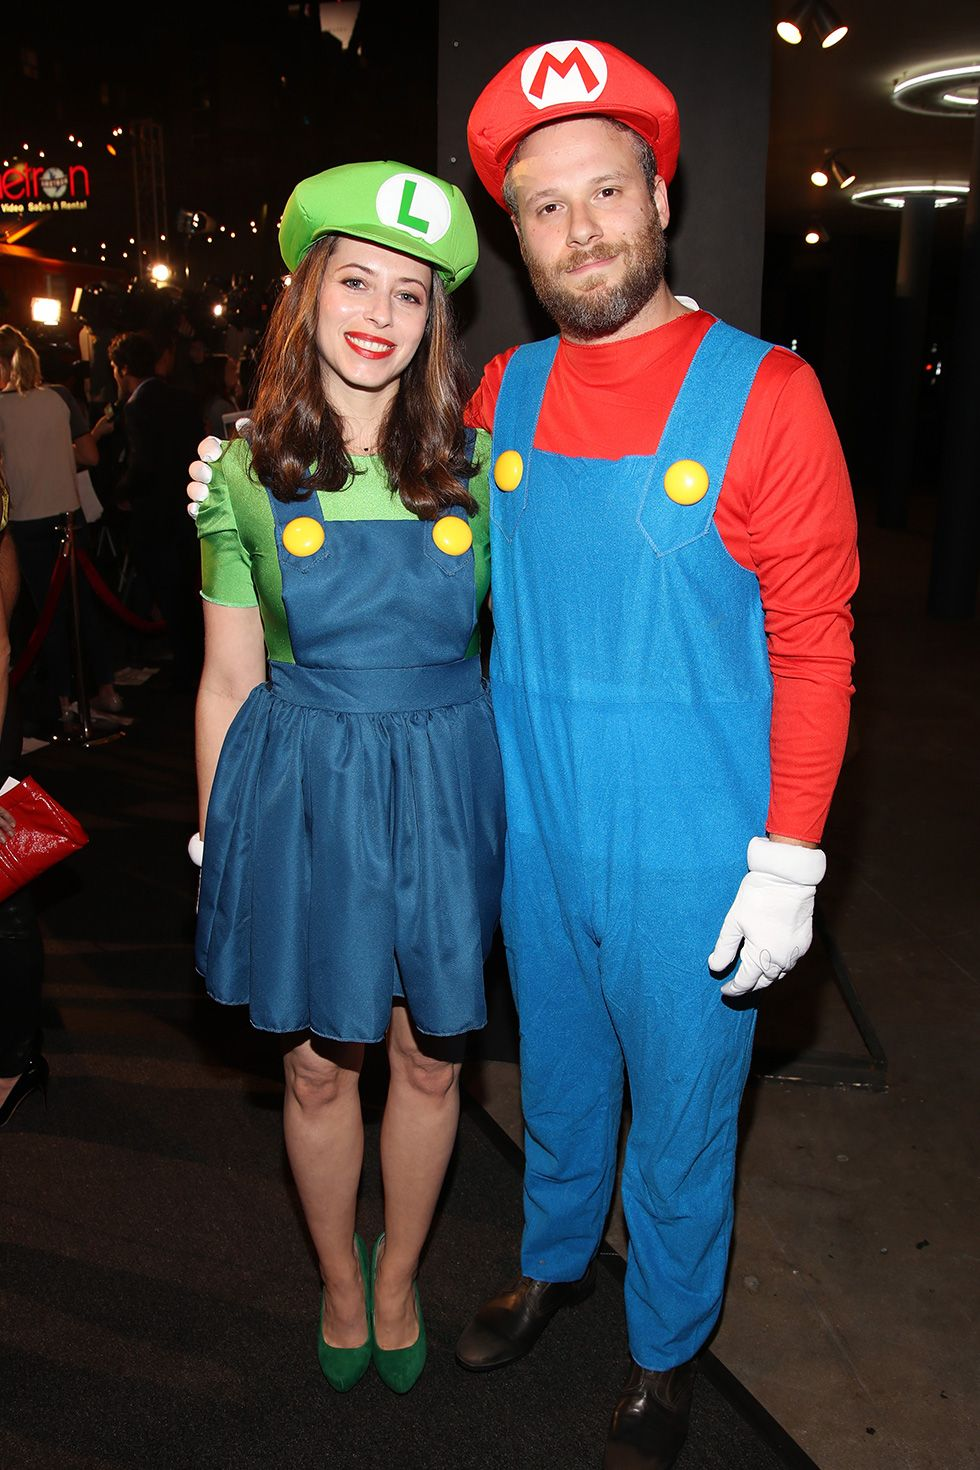 Lauren Miller and Seth Rogen - Luigi and Mario Lauren Miller and Seth Rogen dressed up as the Mario Brothers in 2016 in Los Angeles, California. A classic couples costume.